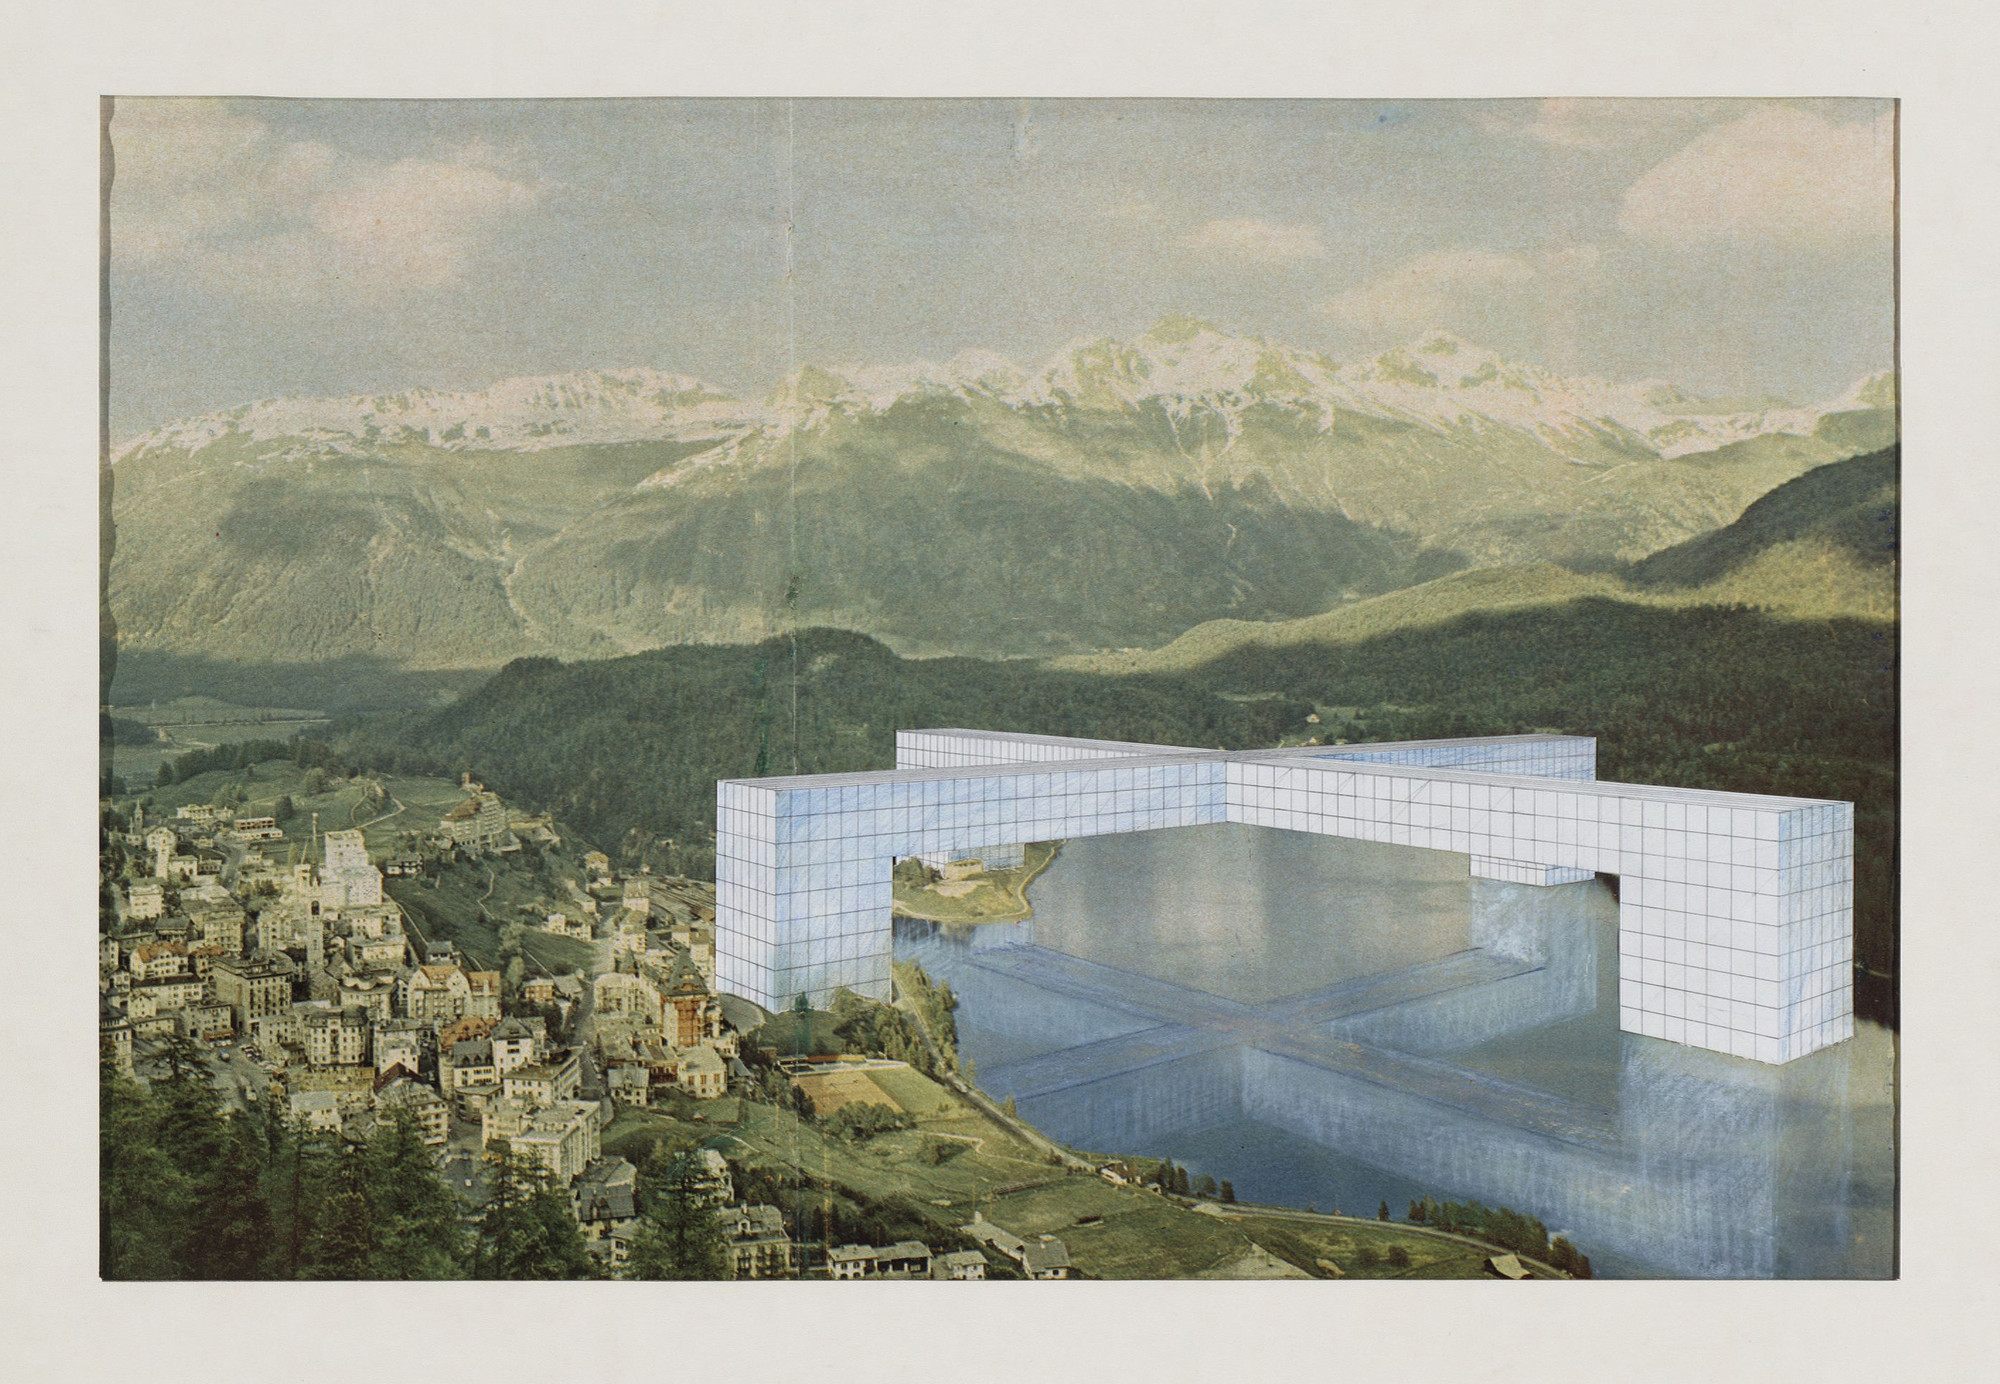 Superstudio, Gian Piero Frassinelli, Alessandro Magris, Roberto Magris, Adolfo Natalini, Cristiano Toraldo di Francia. The Continuous Monument: St. Moritz Revisited, project (Perspective). 1969